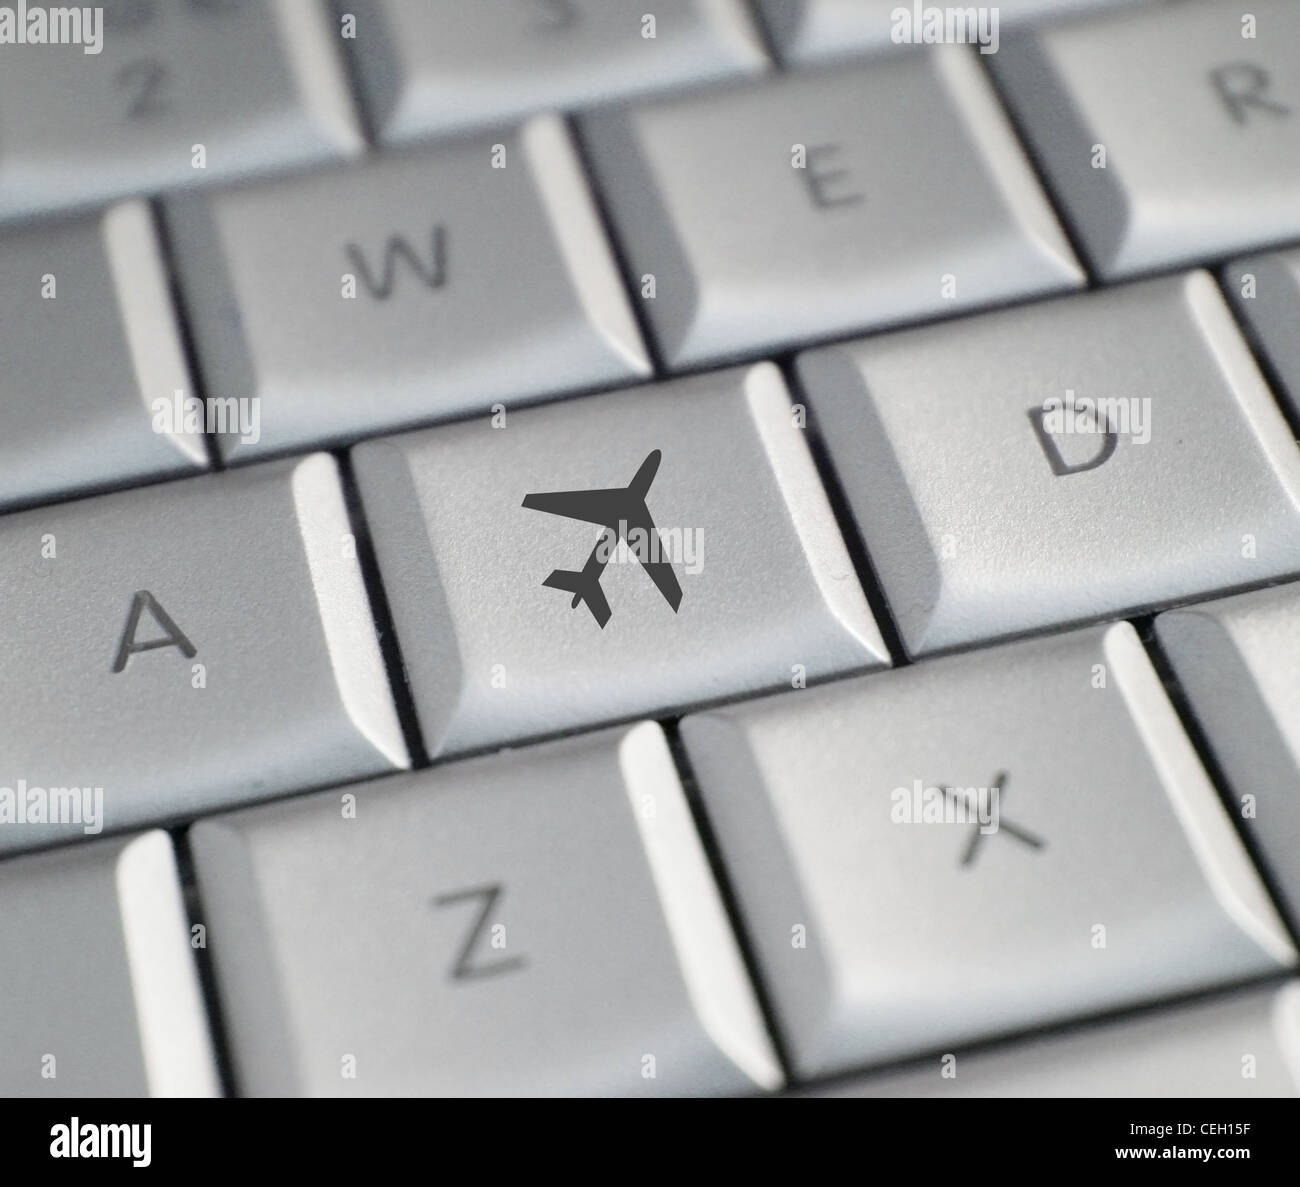 Airplane tickets - Stock Image